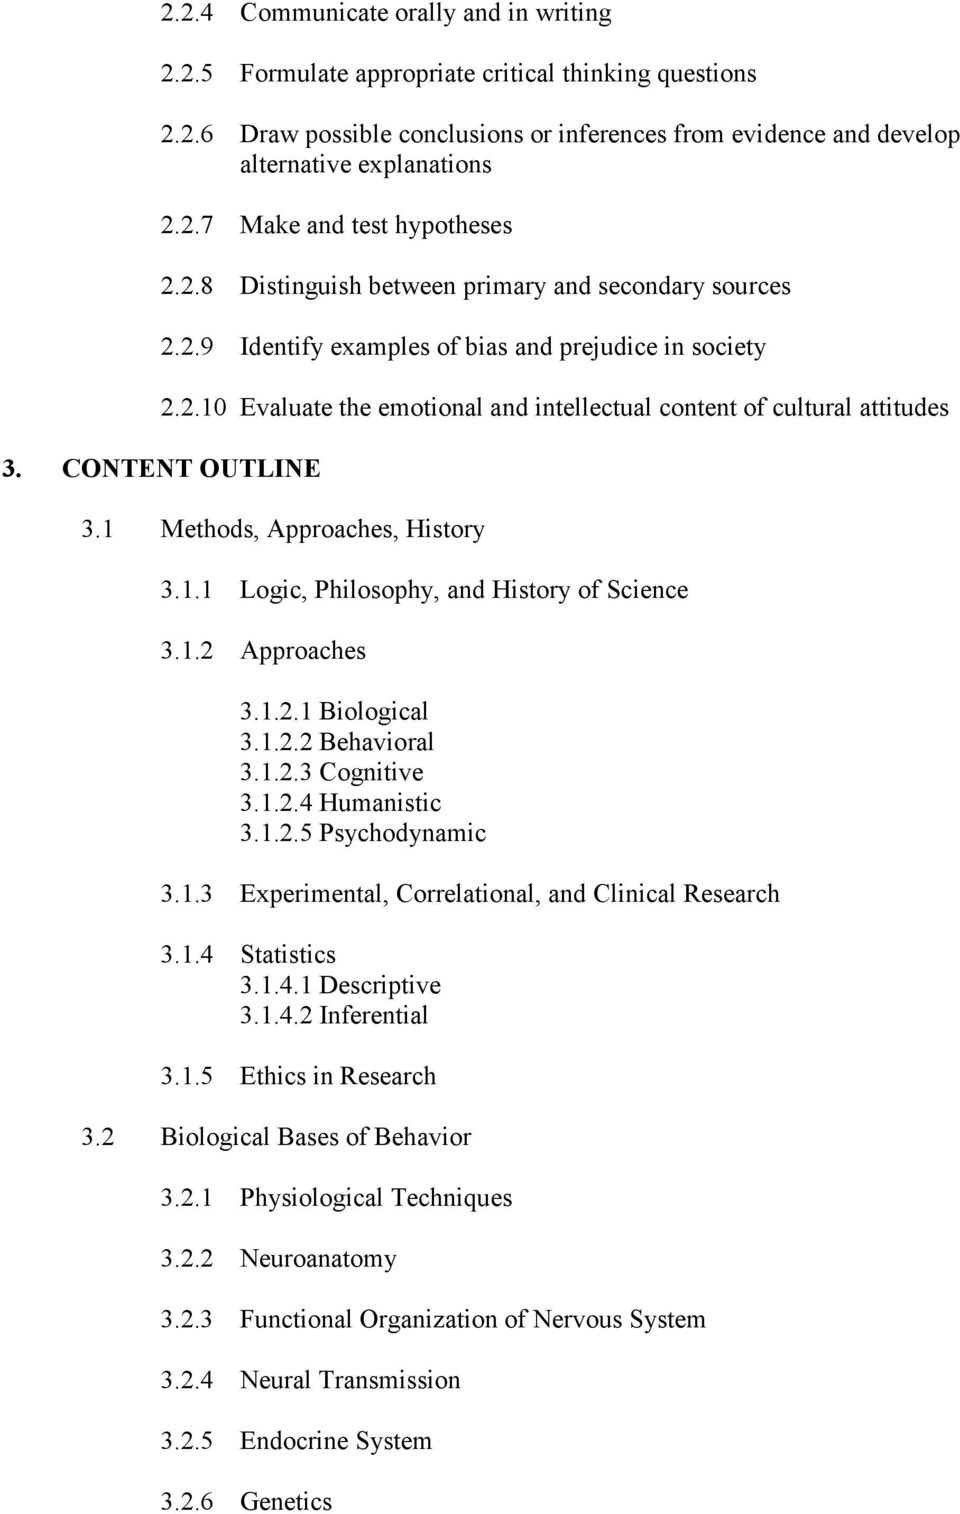 CONTENT OUTLINE 3.1 Methods, Approaches, History 3.1.1 Logic, Philosophy, and History of Science 3.1.2 Approaches 3.1.2.1 Biological 3.1.2.2 Behavioral 3.1.2.3 Cognitive 3.1.2.4 Humanistic 3.1.2.5 Psychodynamic 3.